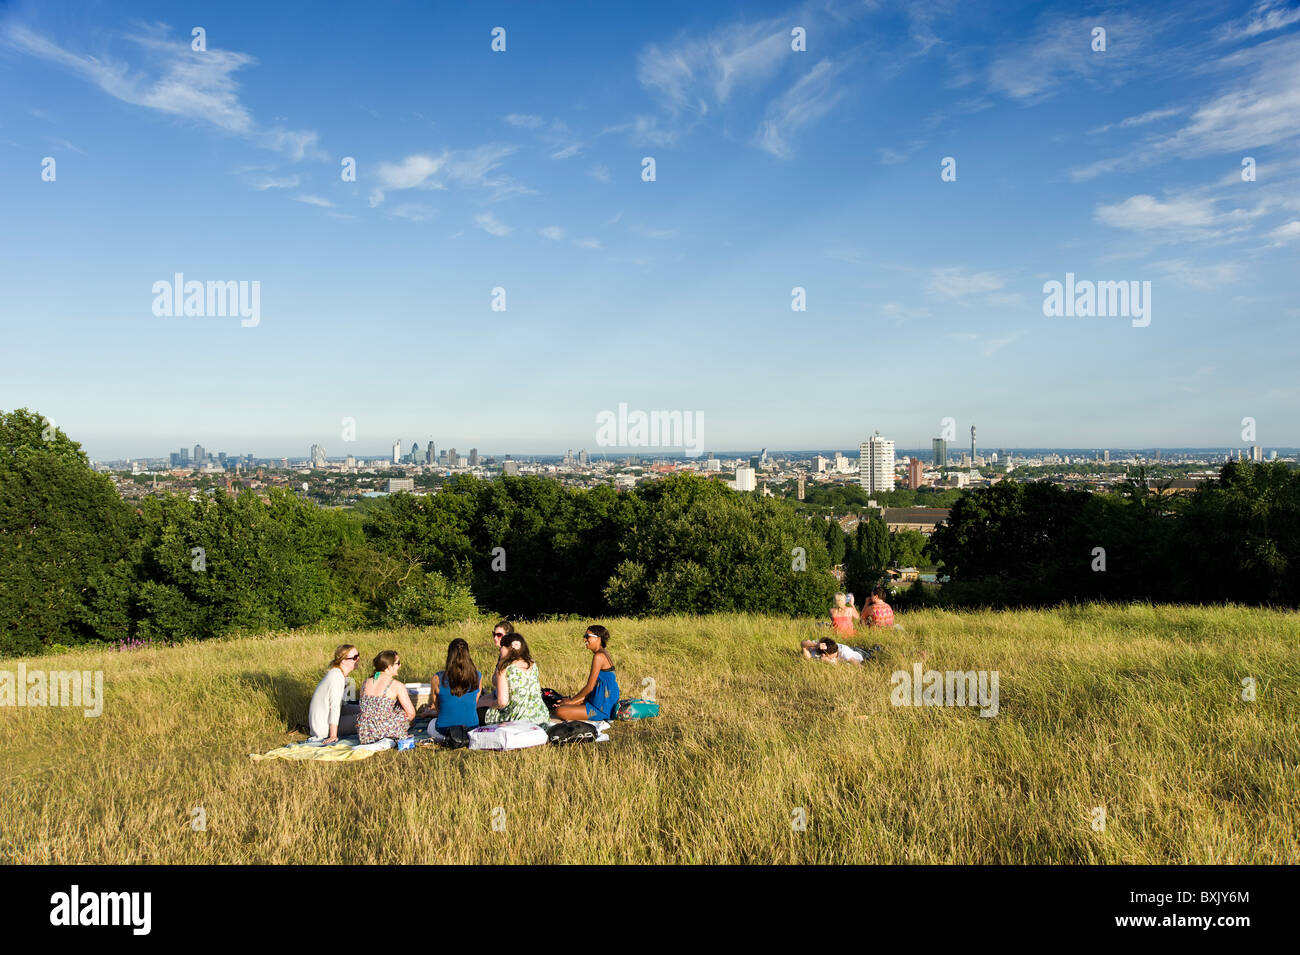 People at the top of Parliament Hill, Hampstead Heath, London, England, UK Stock Photo